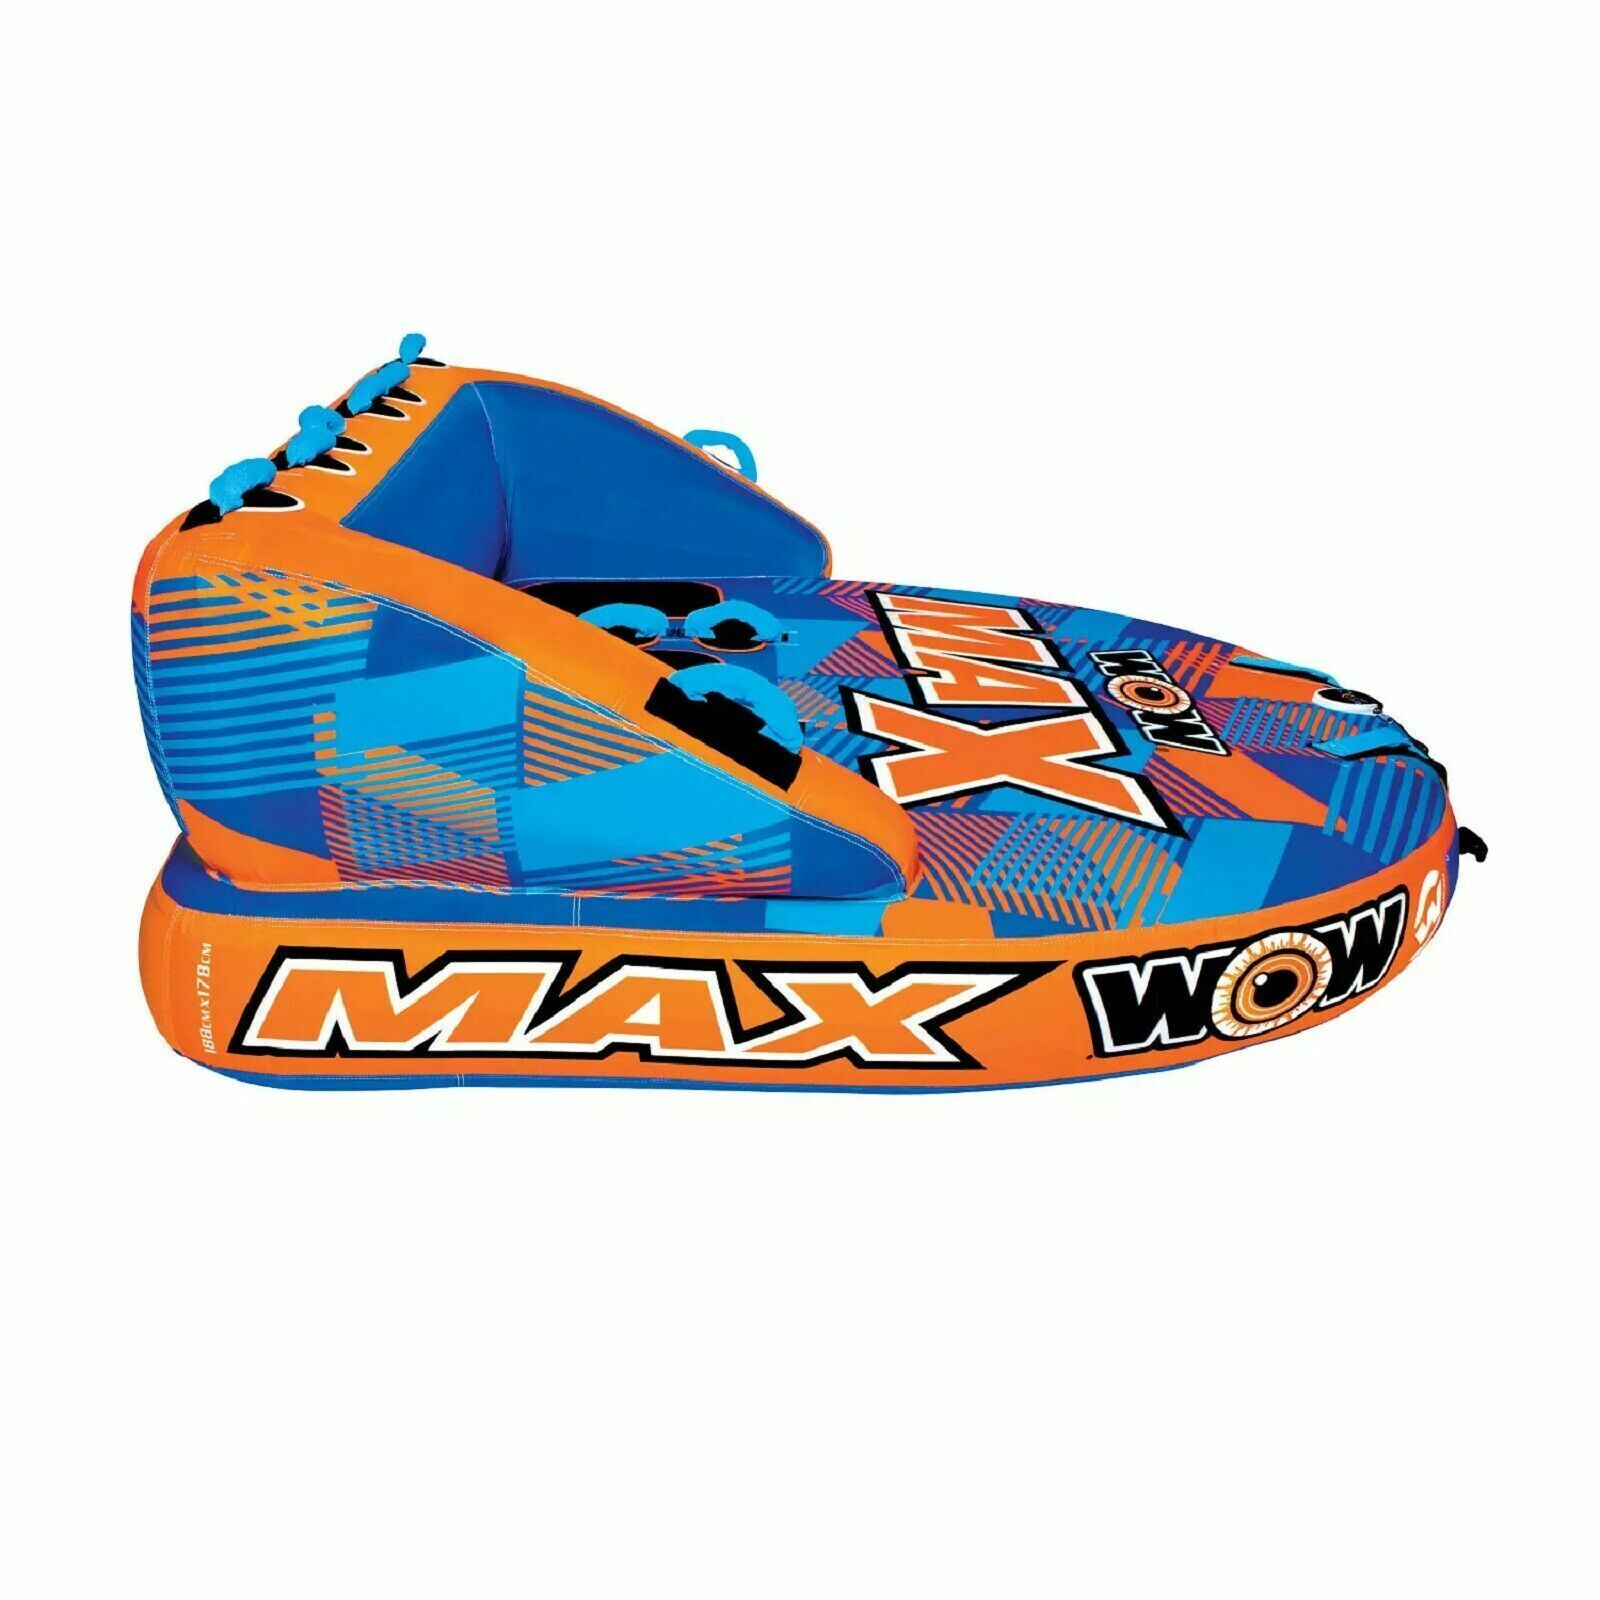 Image 9 - WOW MAX 1, 2 or 3 Person Inflatable Towable Tube Boat Water Raft Float FAST SHIP